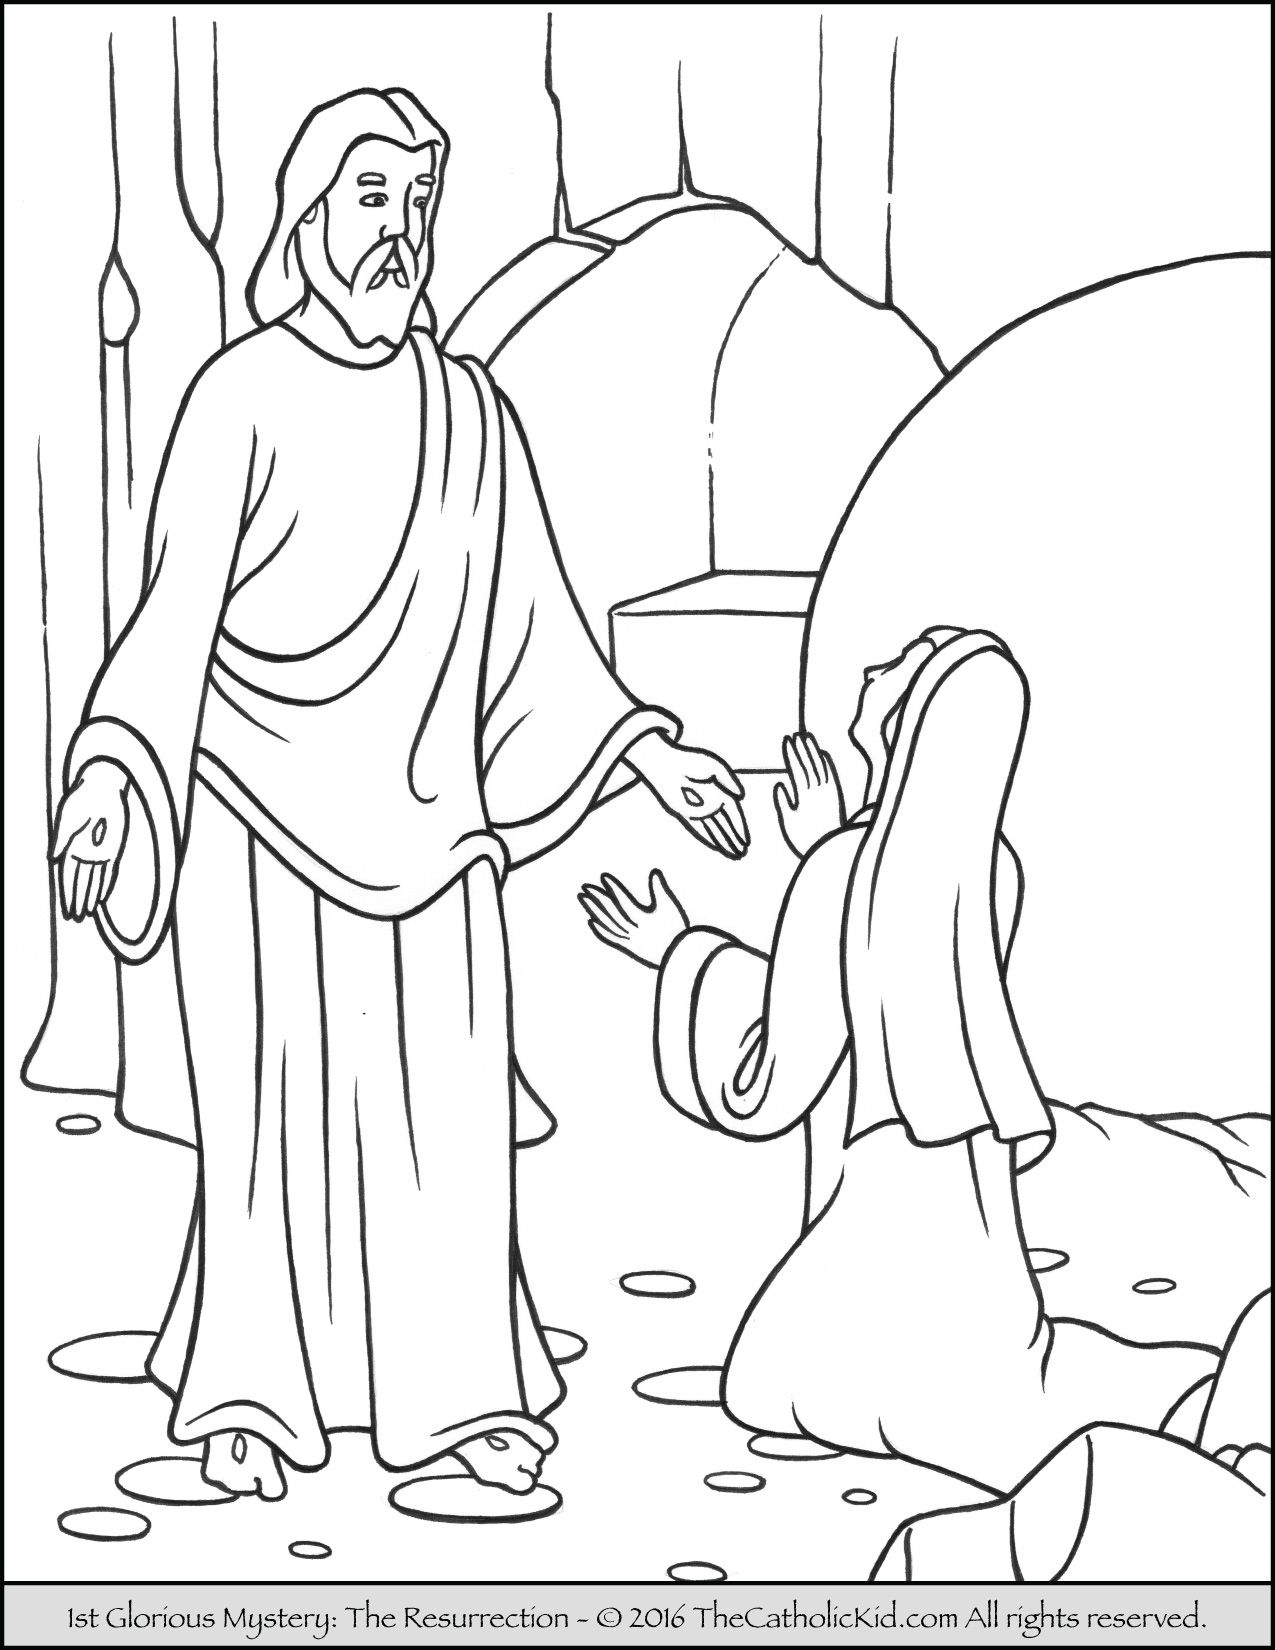 The 1st Glorious Mystery Coloring Page – The Resurrection: Jesus ...